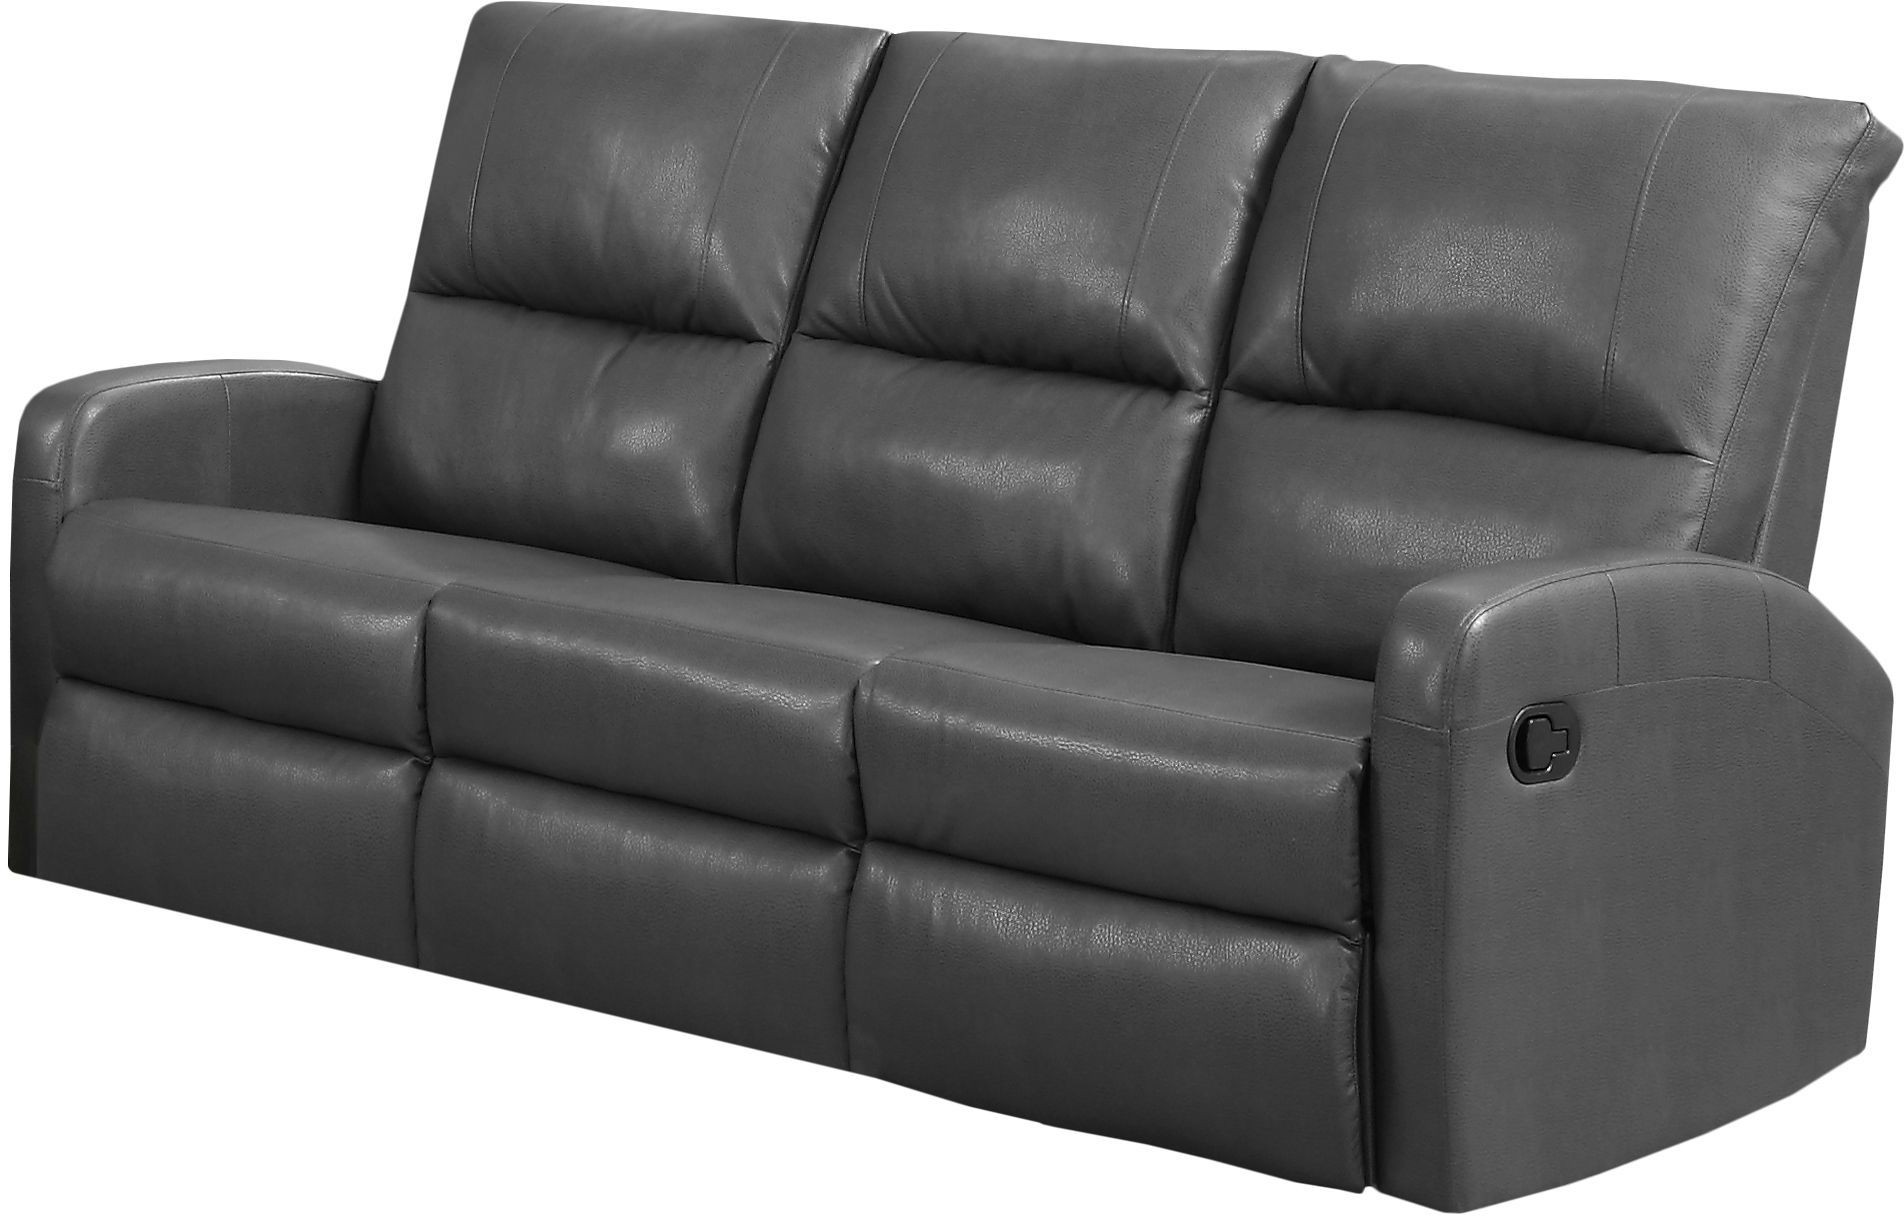 grey leather sectional sofa with recliners suede cleaner kit 84gy 3 charcoal bonded reclining